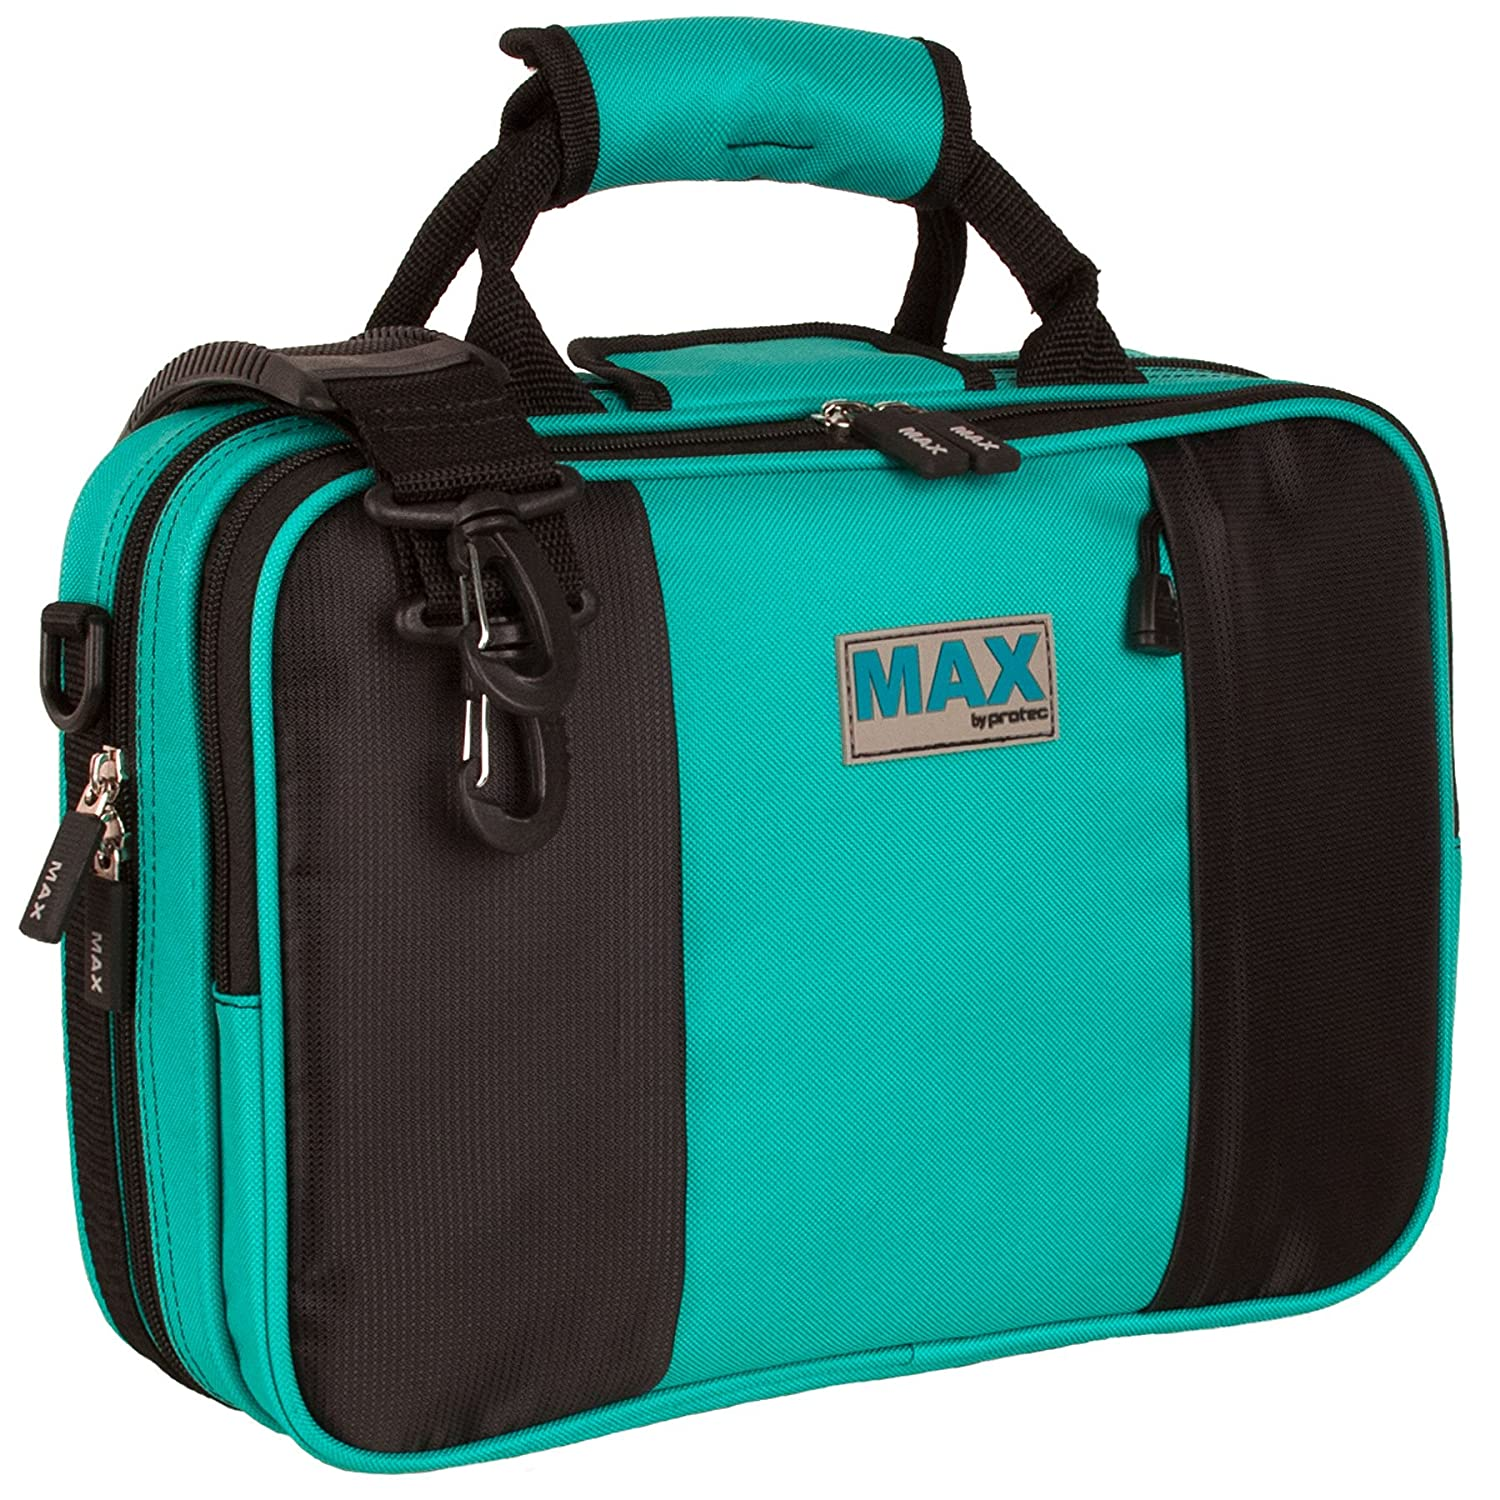 Pro Tec MX307MT Bb Clarinet MAX Case (Mint), Model